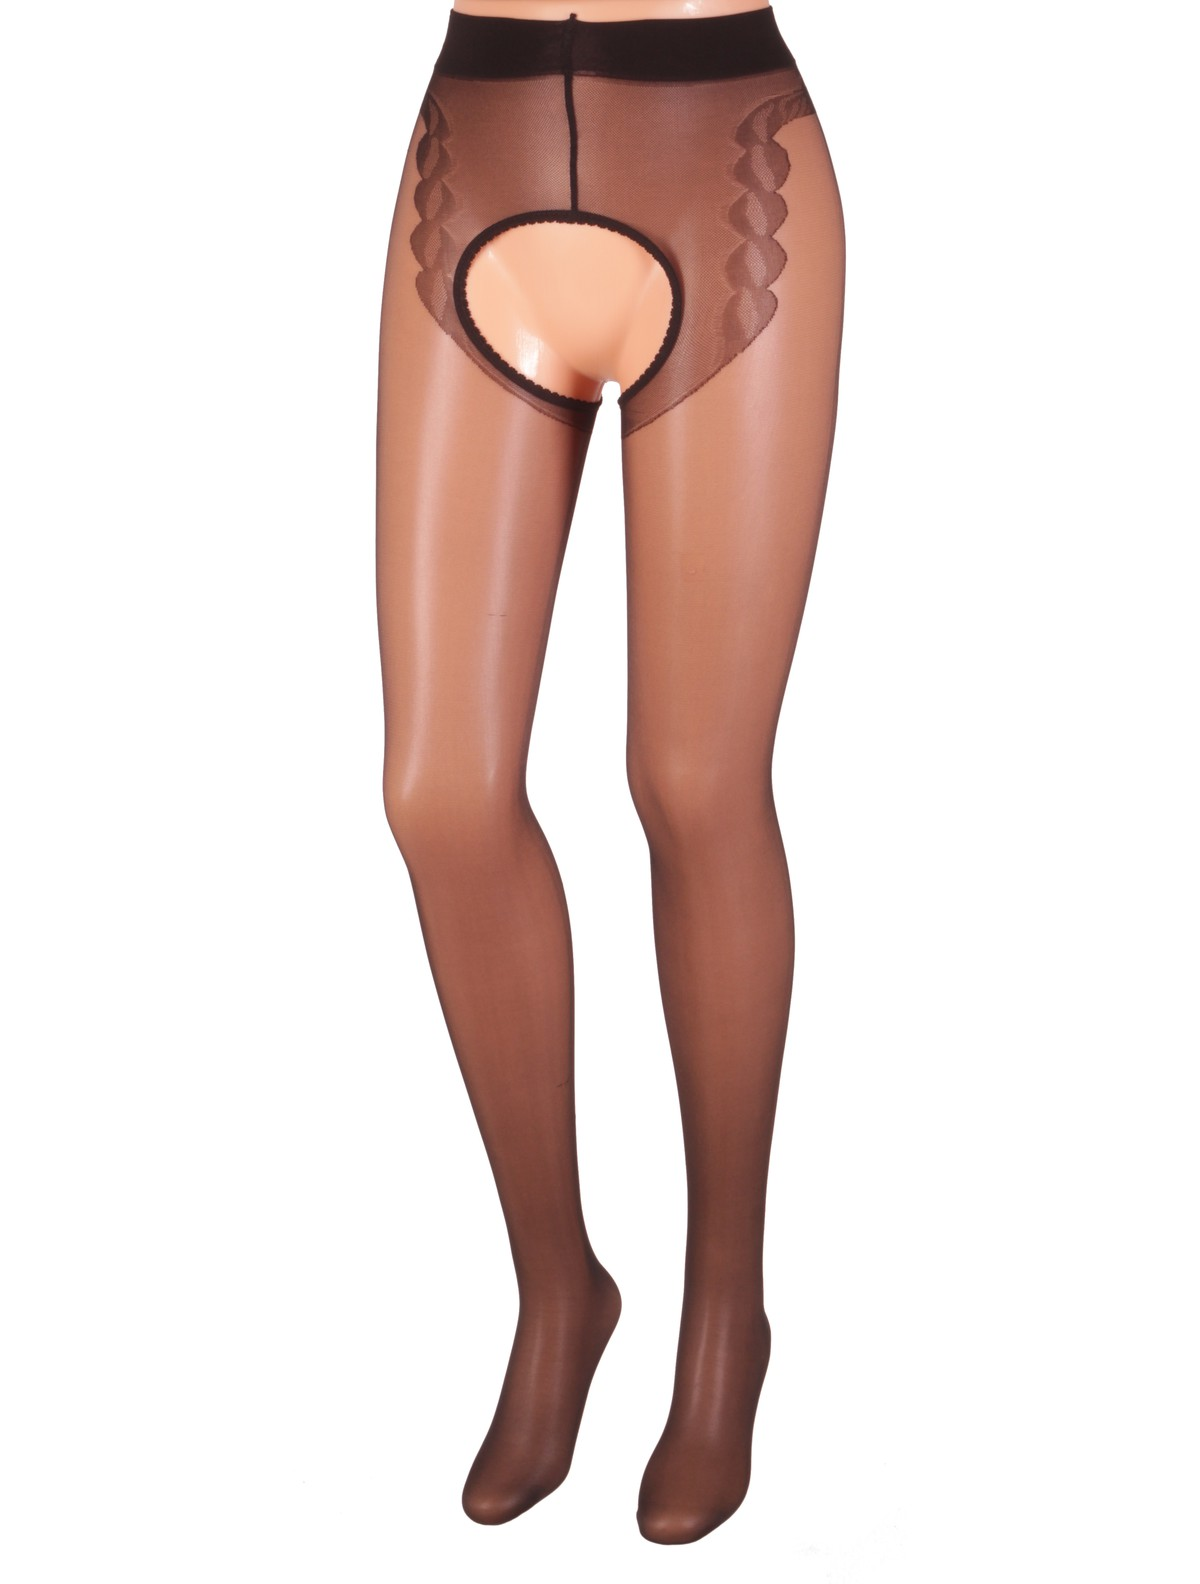 Crotchless pantyhose tights-7998